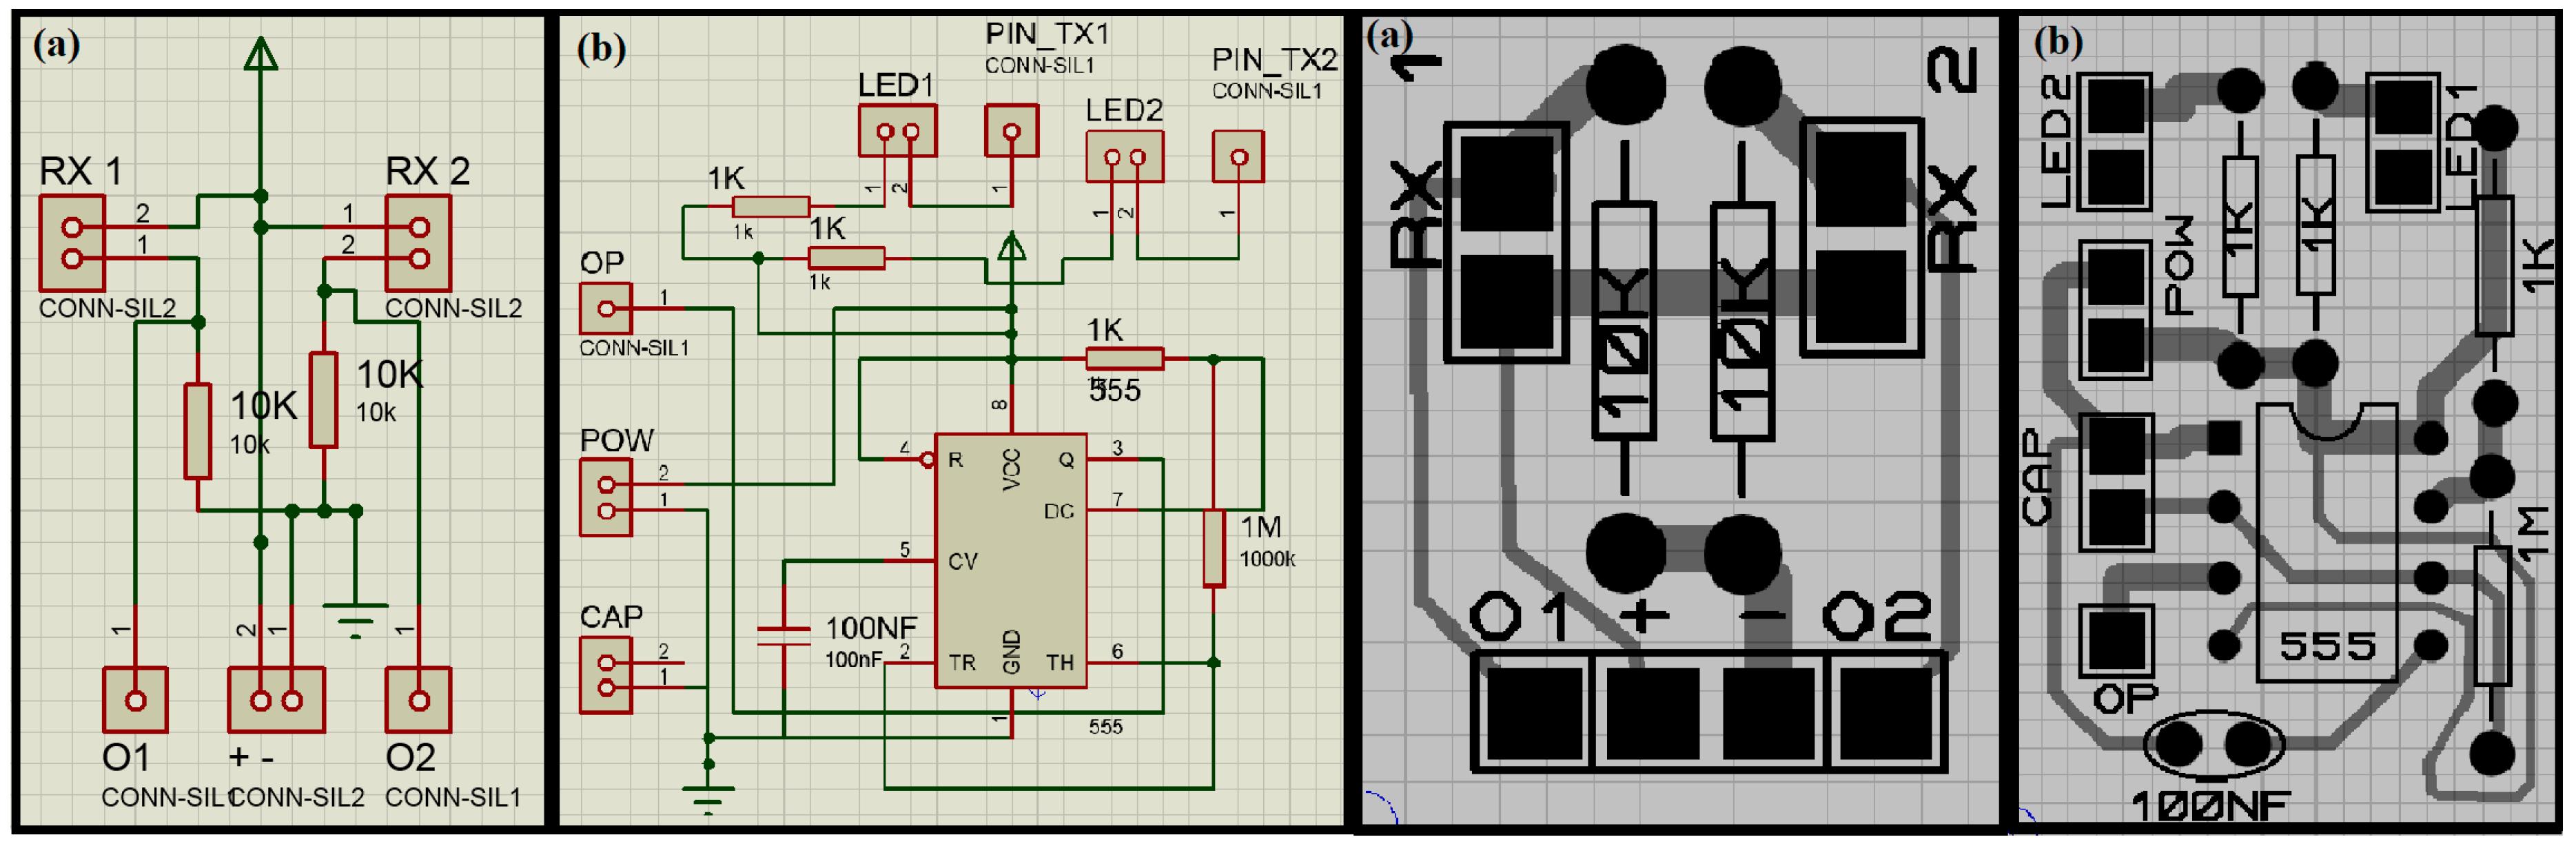 Jsan Free Full Text Design Fabrication And Testing Of An Lm555 Electronics Schematic Diagram Two Stage Time Delay Circuit Part 29 08 00002 G001 Figure 1